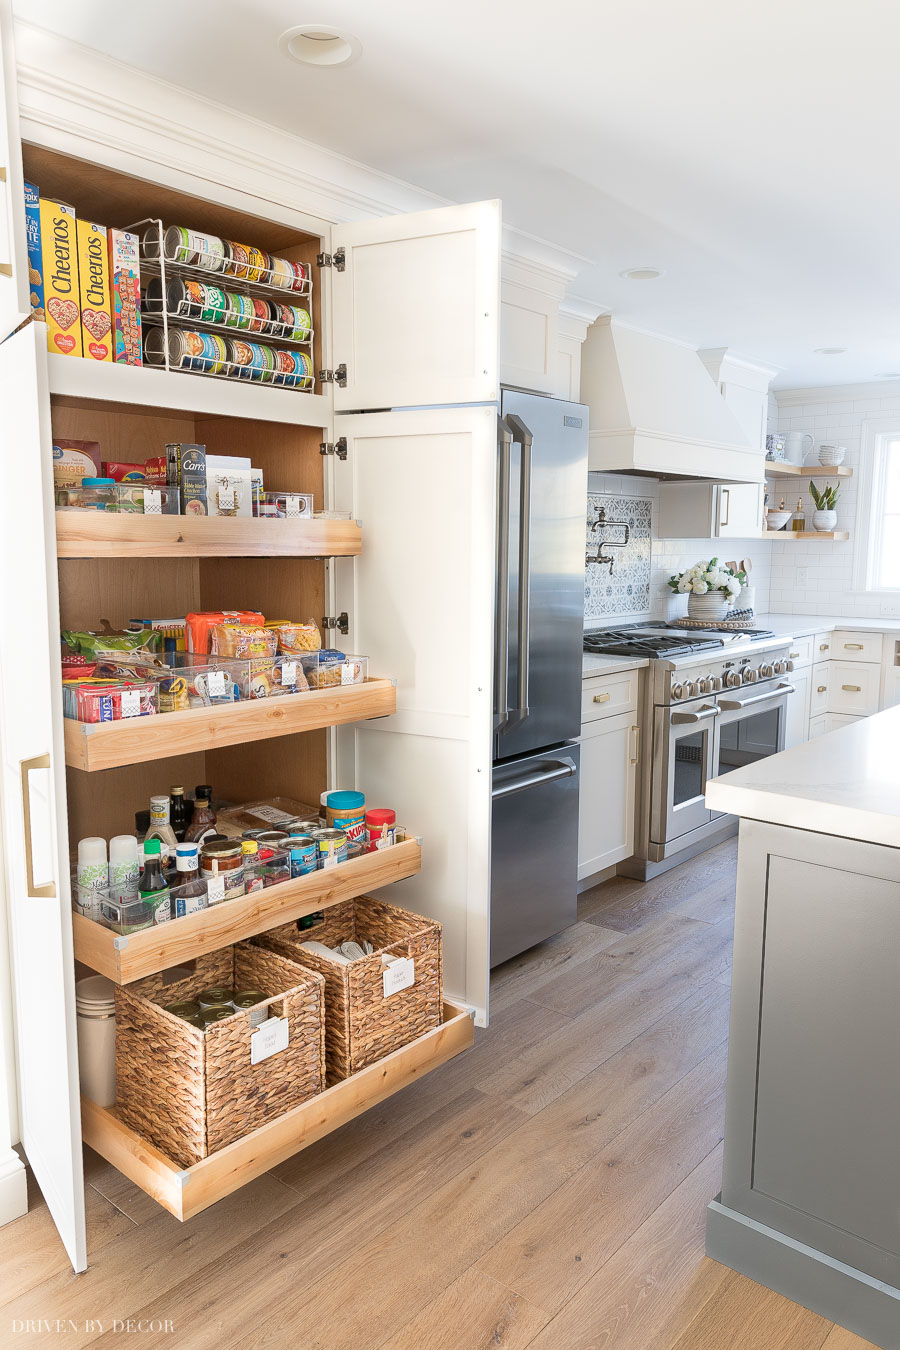 Great pantry organization tips from the gorgeous kitchen pantry cabinet!